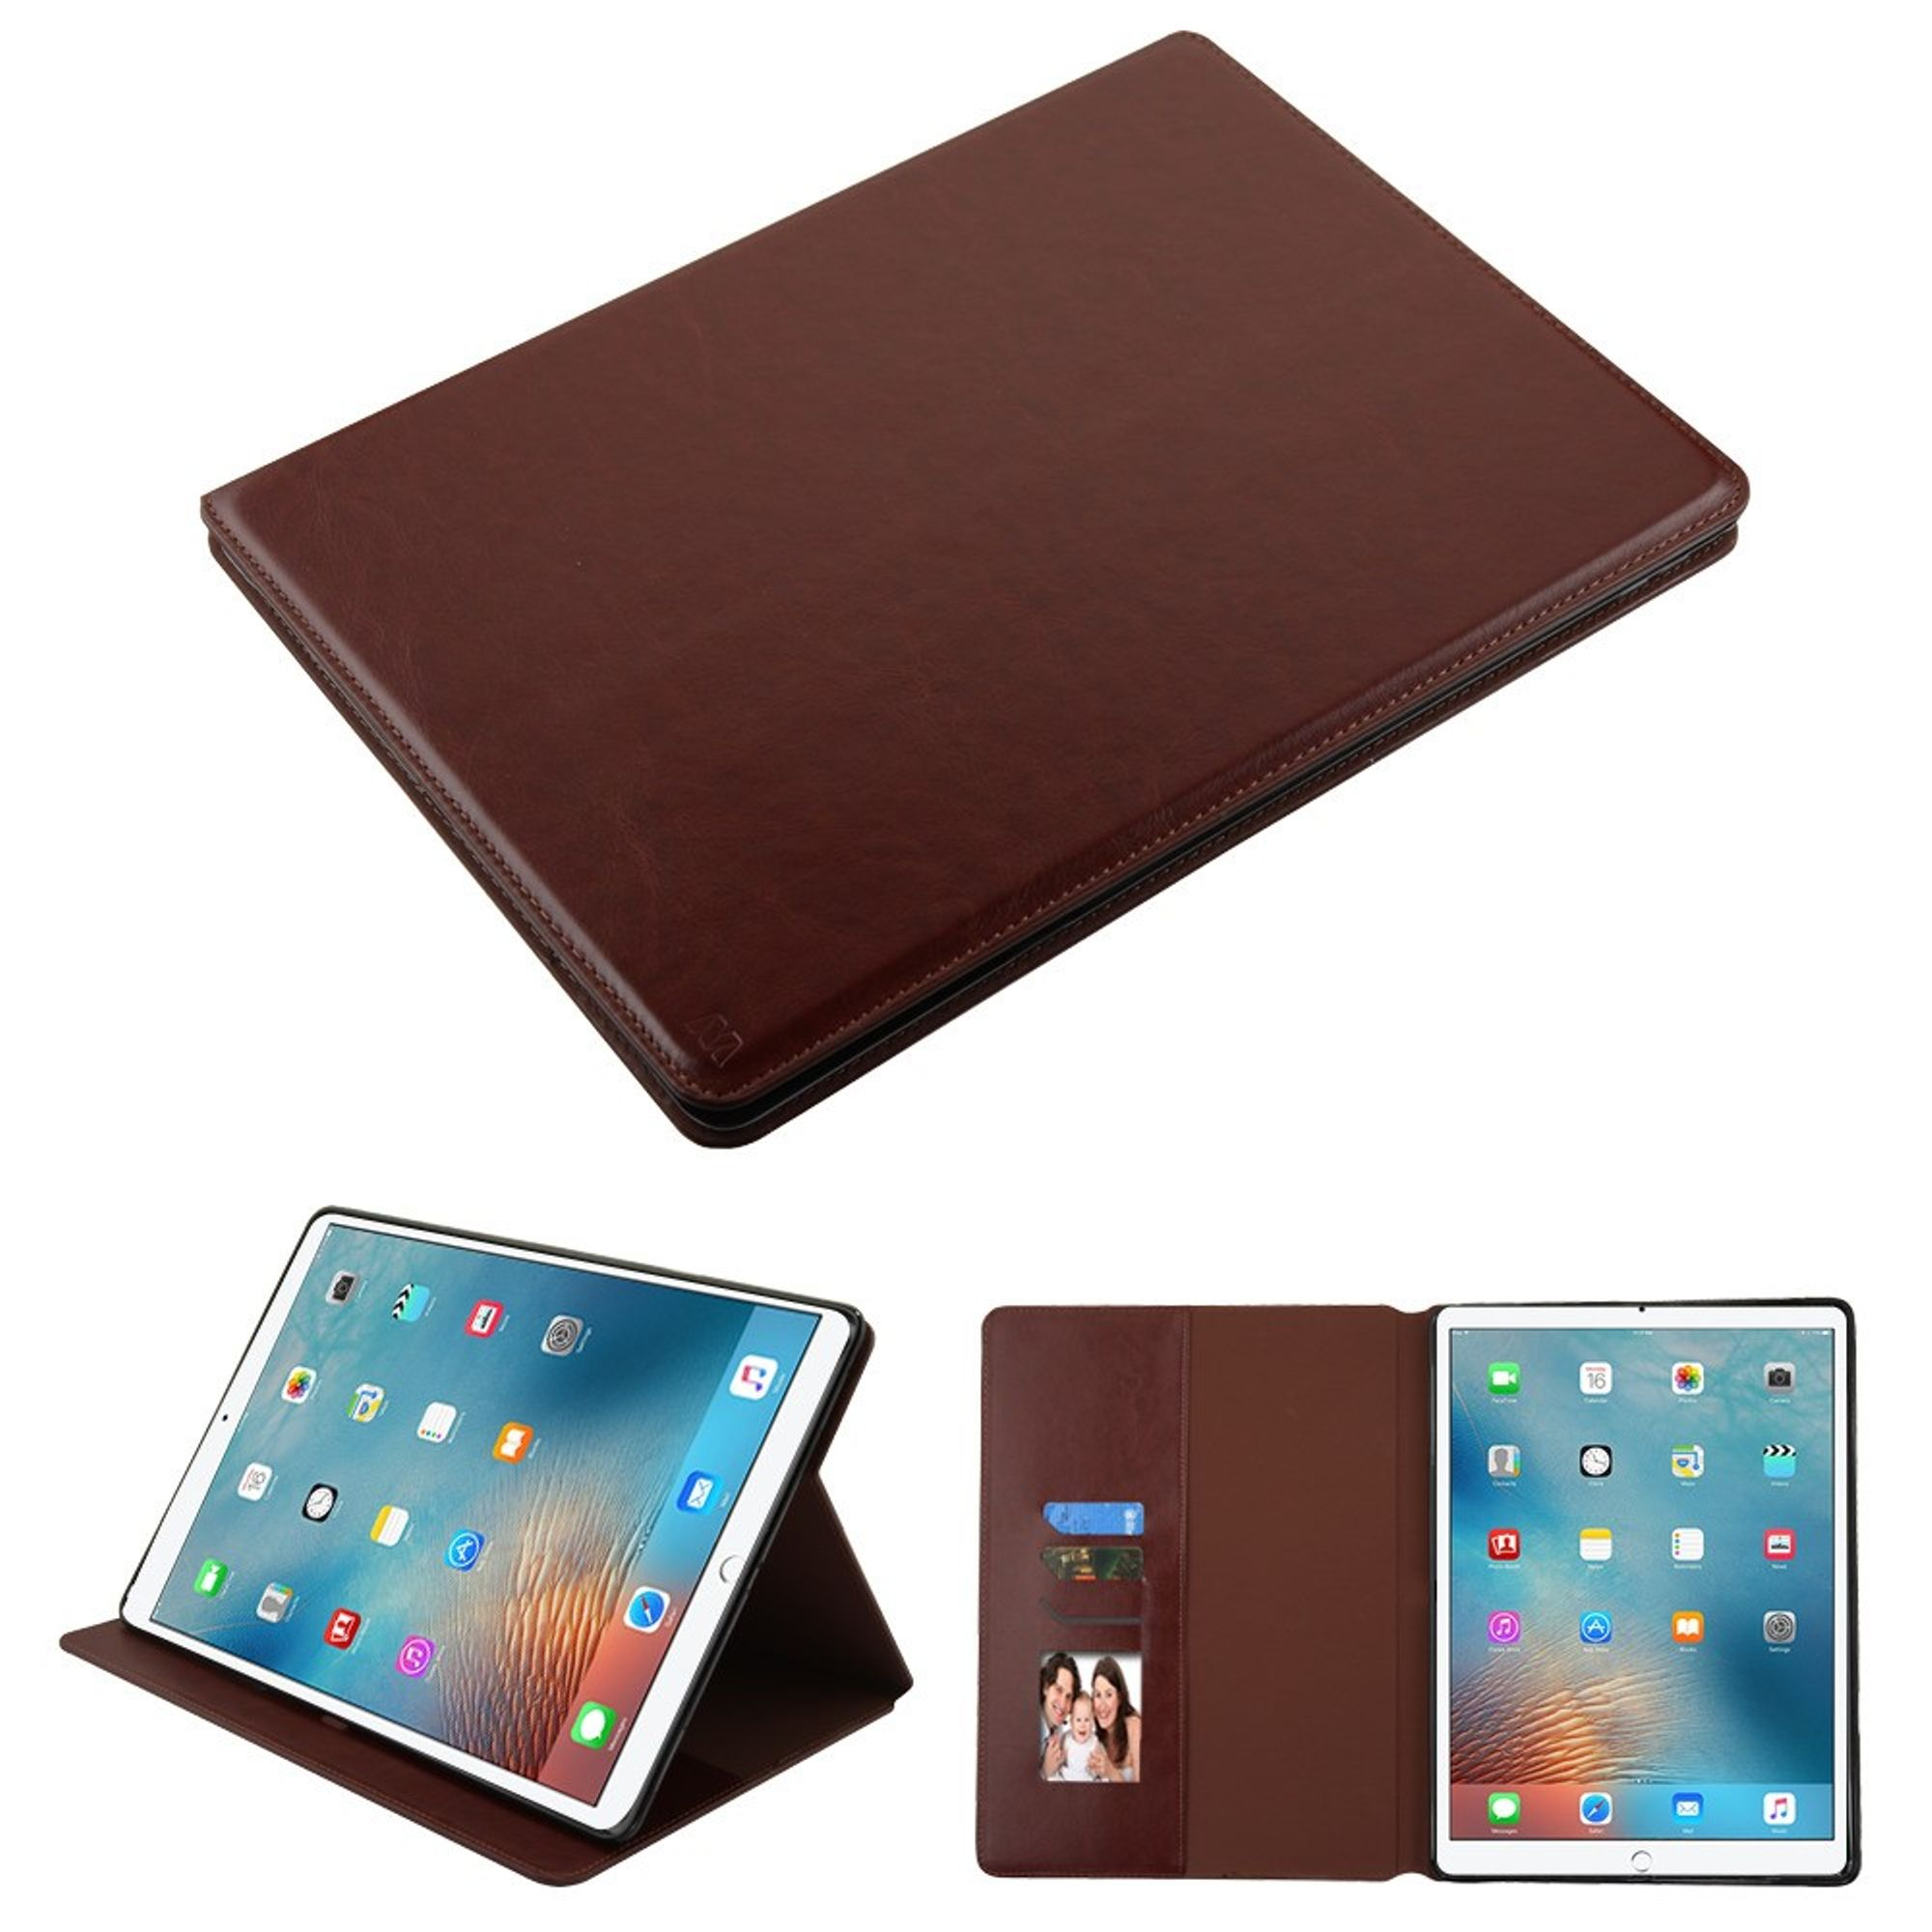 """iPad Pro 12.9 2017 case by Insten MyJacket Folio Flip Leather Case Cover w/Stand/[Card Slot] Wallet Flap Pouch/Photo Display For Apple iPad Pro 12.9"""" (2017)"""